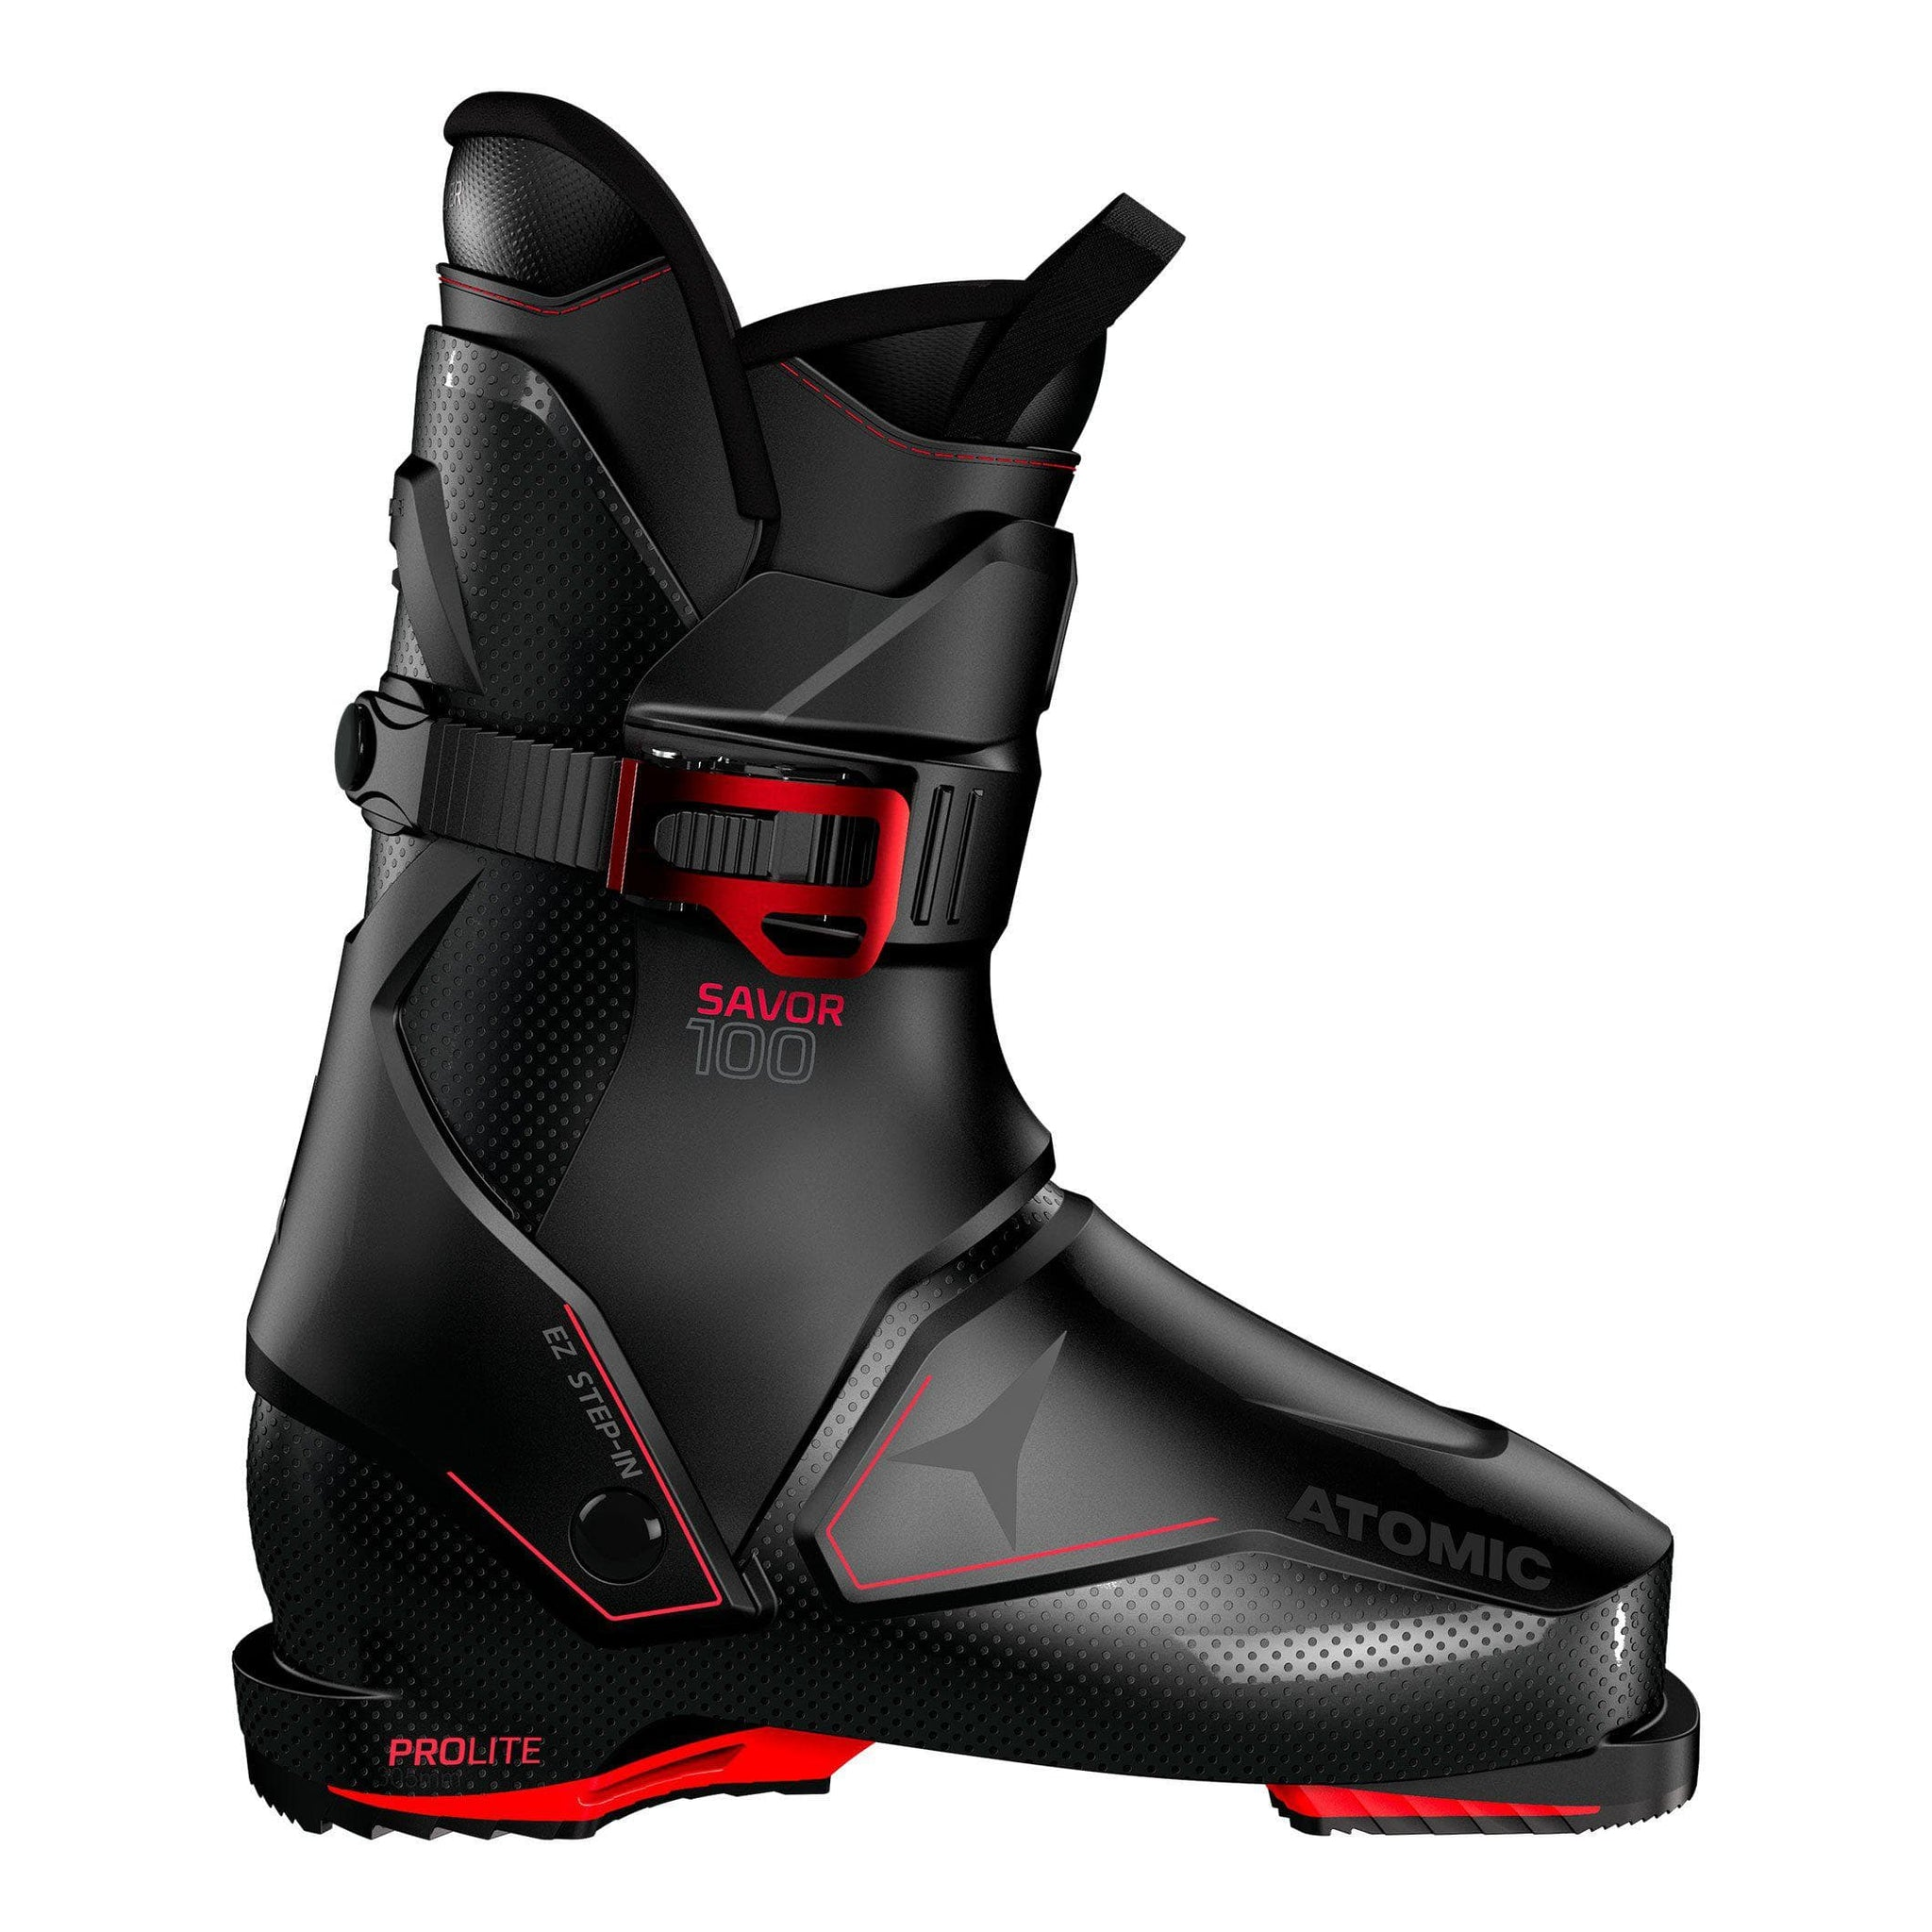 Atomic Savor 100 Rear Entry Ski Boot 2021